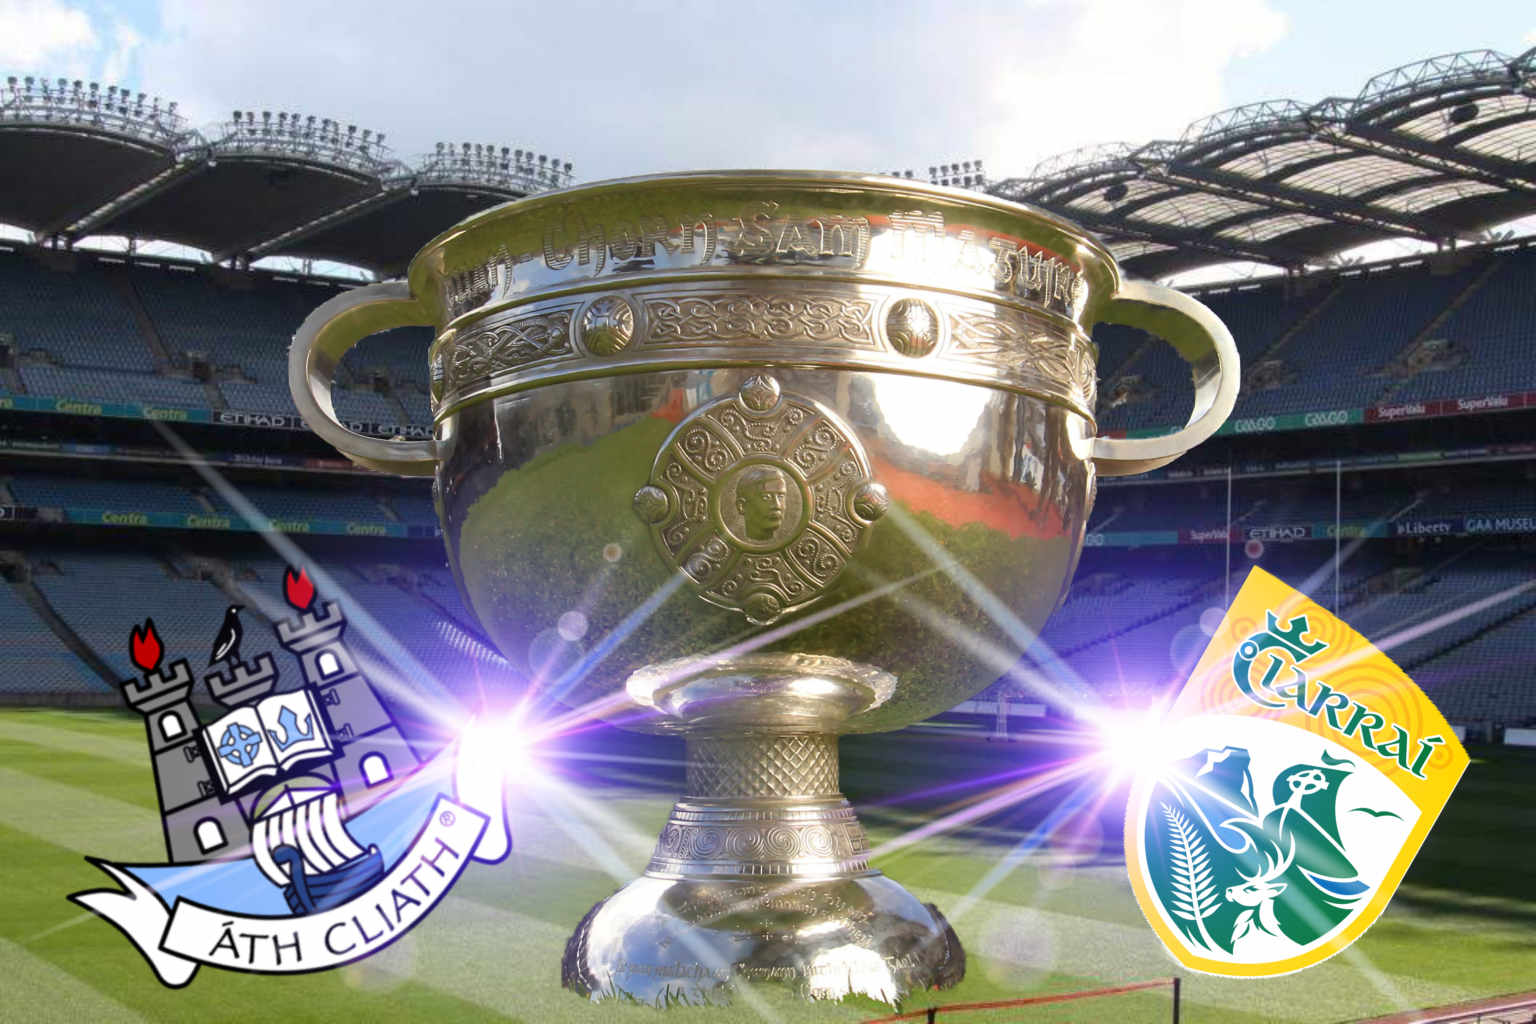 An image of the Sam Maguire cup on the Croke Park pitch with the Dublin and Kerry Logos to signify their All Ireland Final Replay